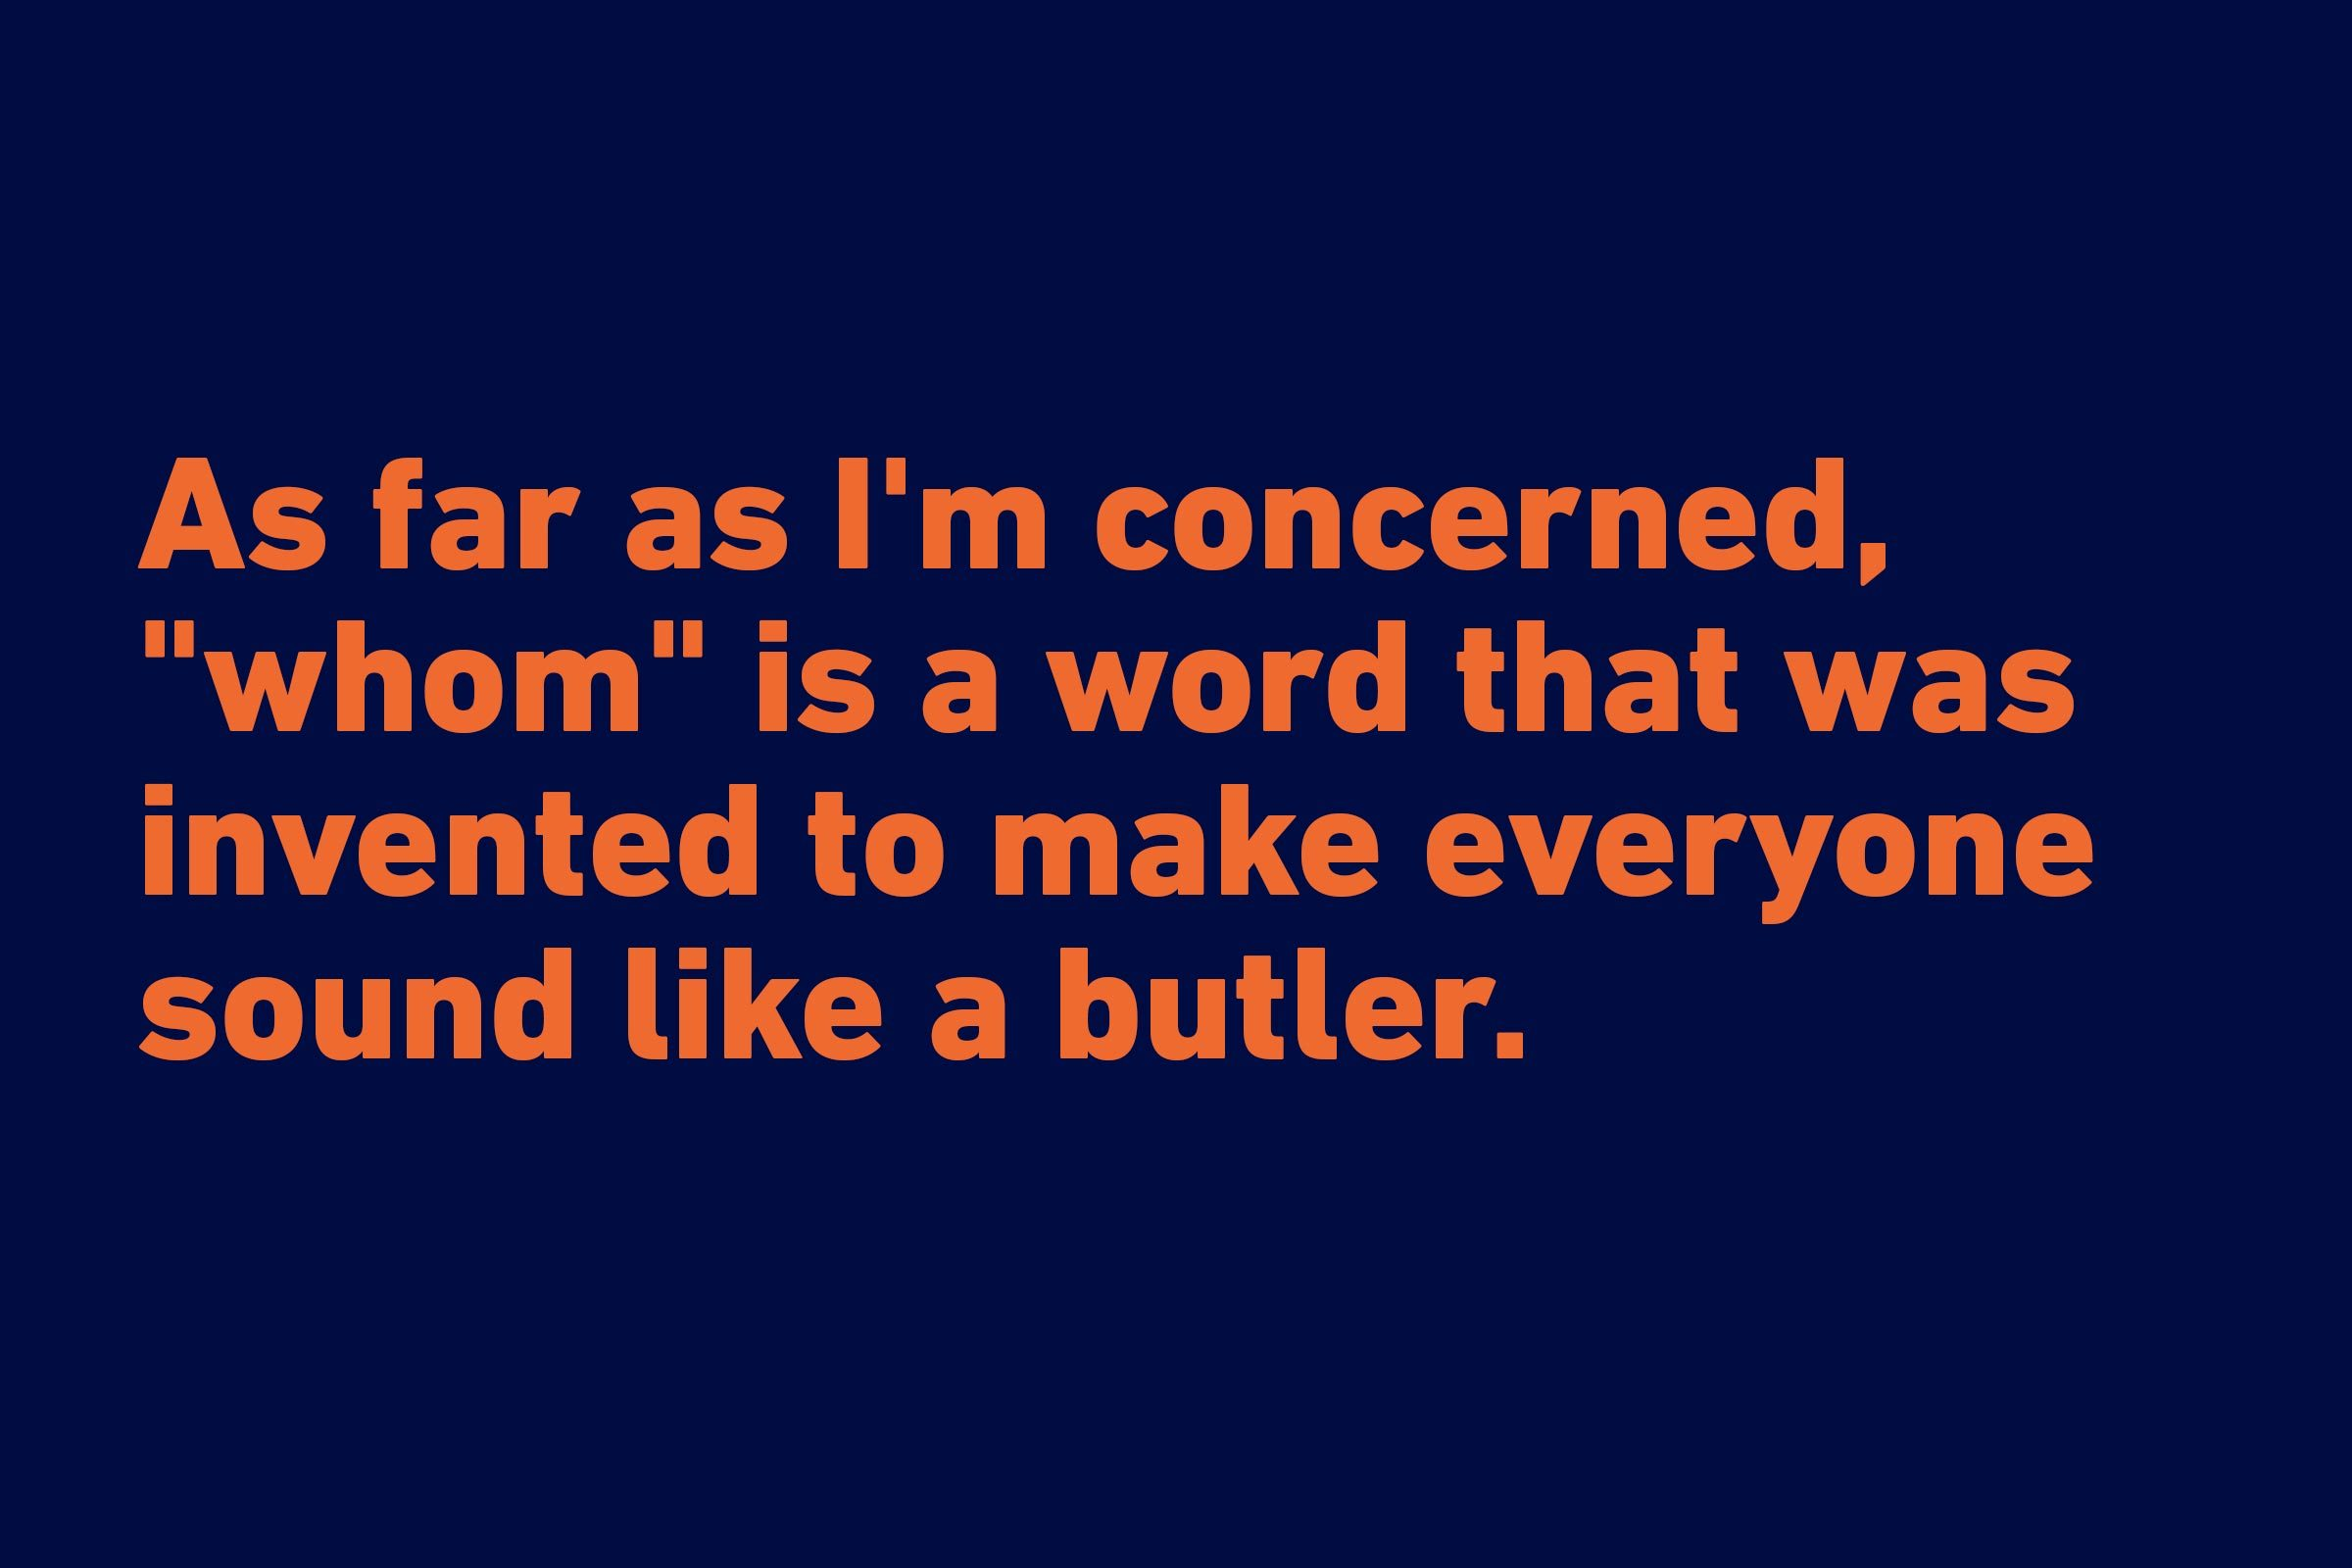 """As far as I'm concerned, ""whom"" is a word that was invented to make everyone sound like a butler."" —Calving Trillin"